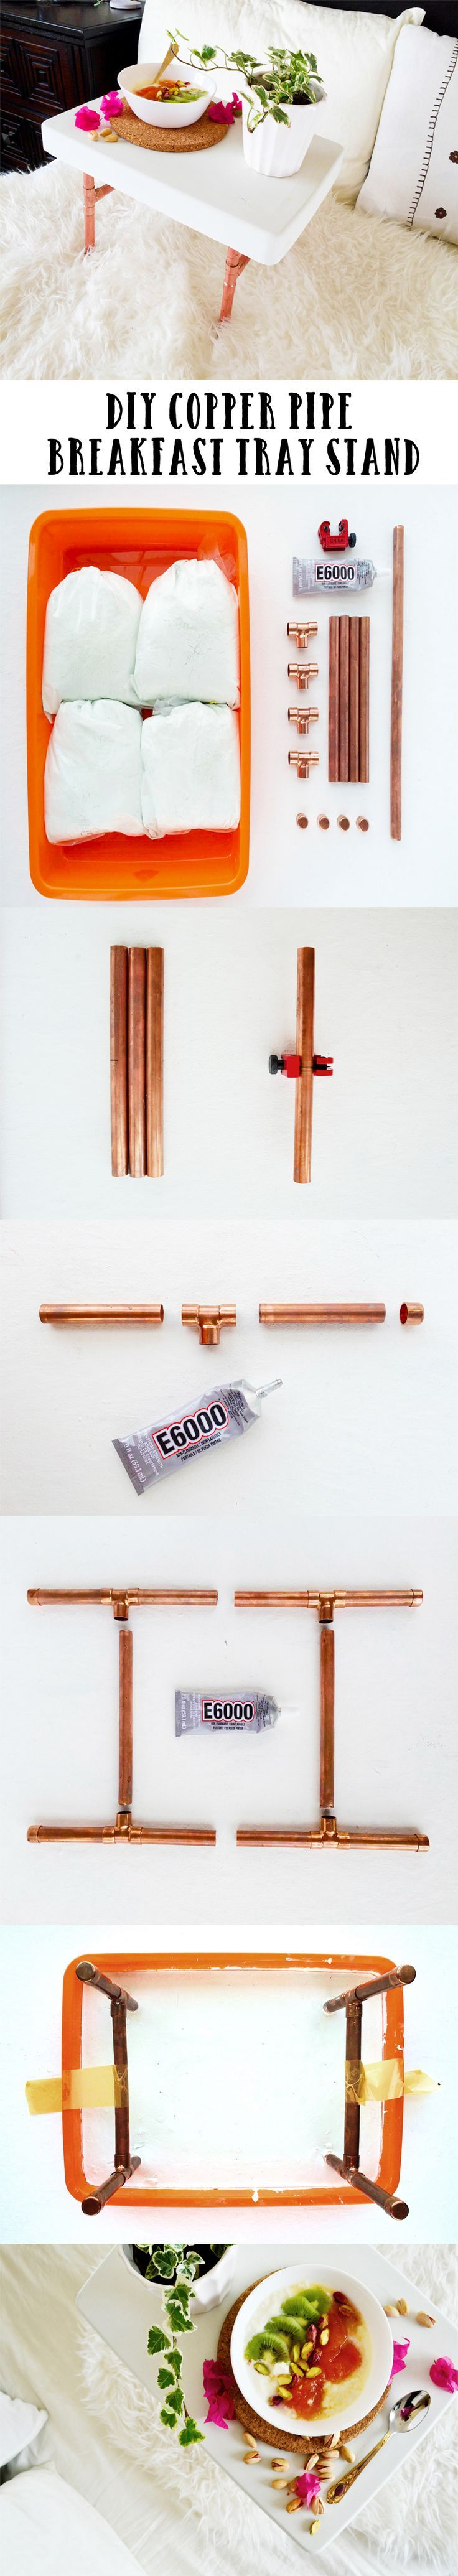 DIY Copper Pipe Breakfast Tray Stand – #Breakfast #Copper #DIY #pipe #Stand #Tra…